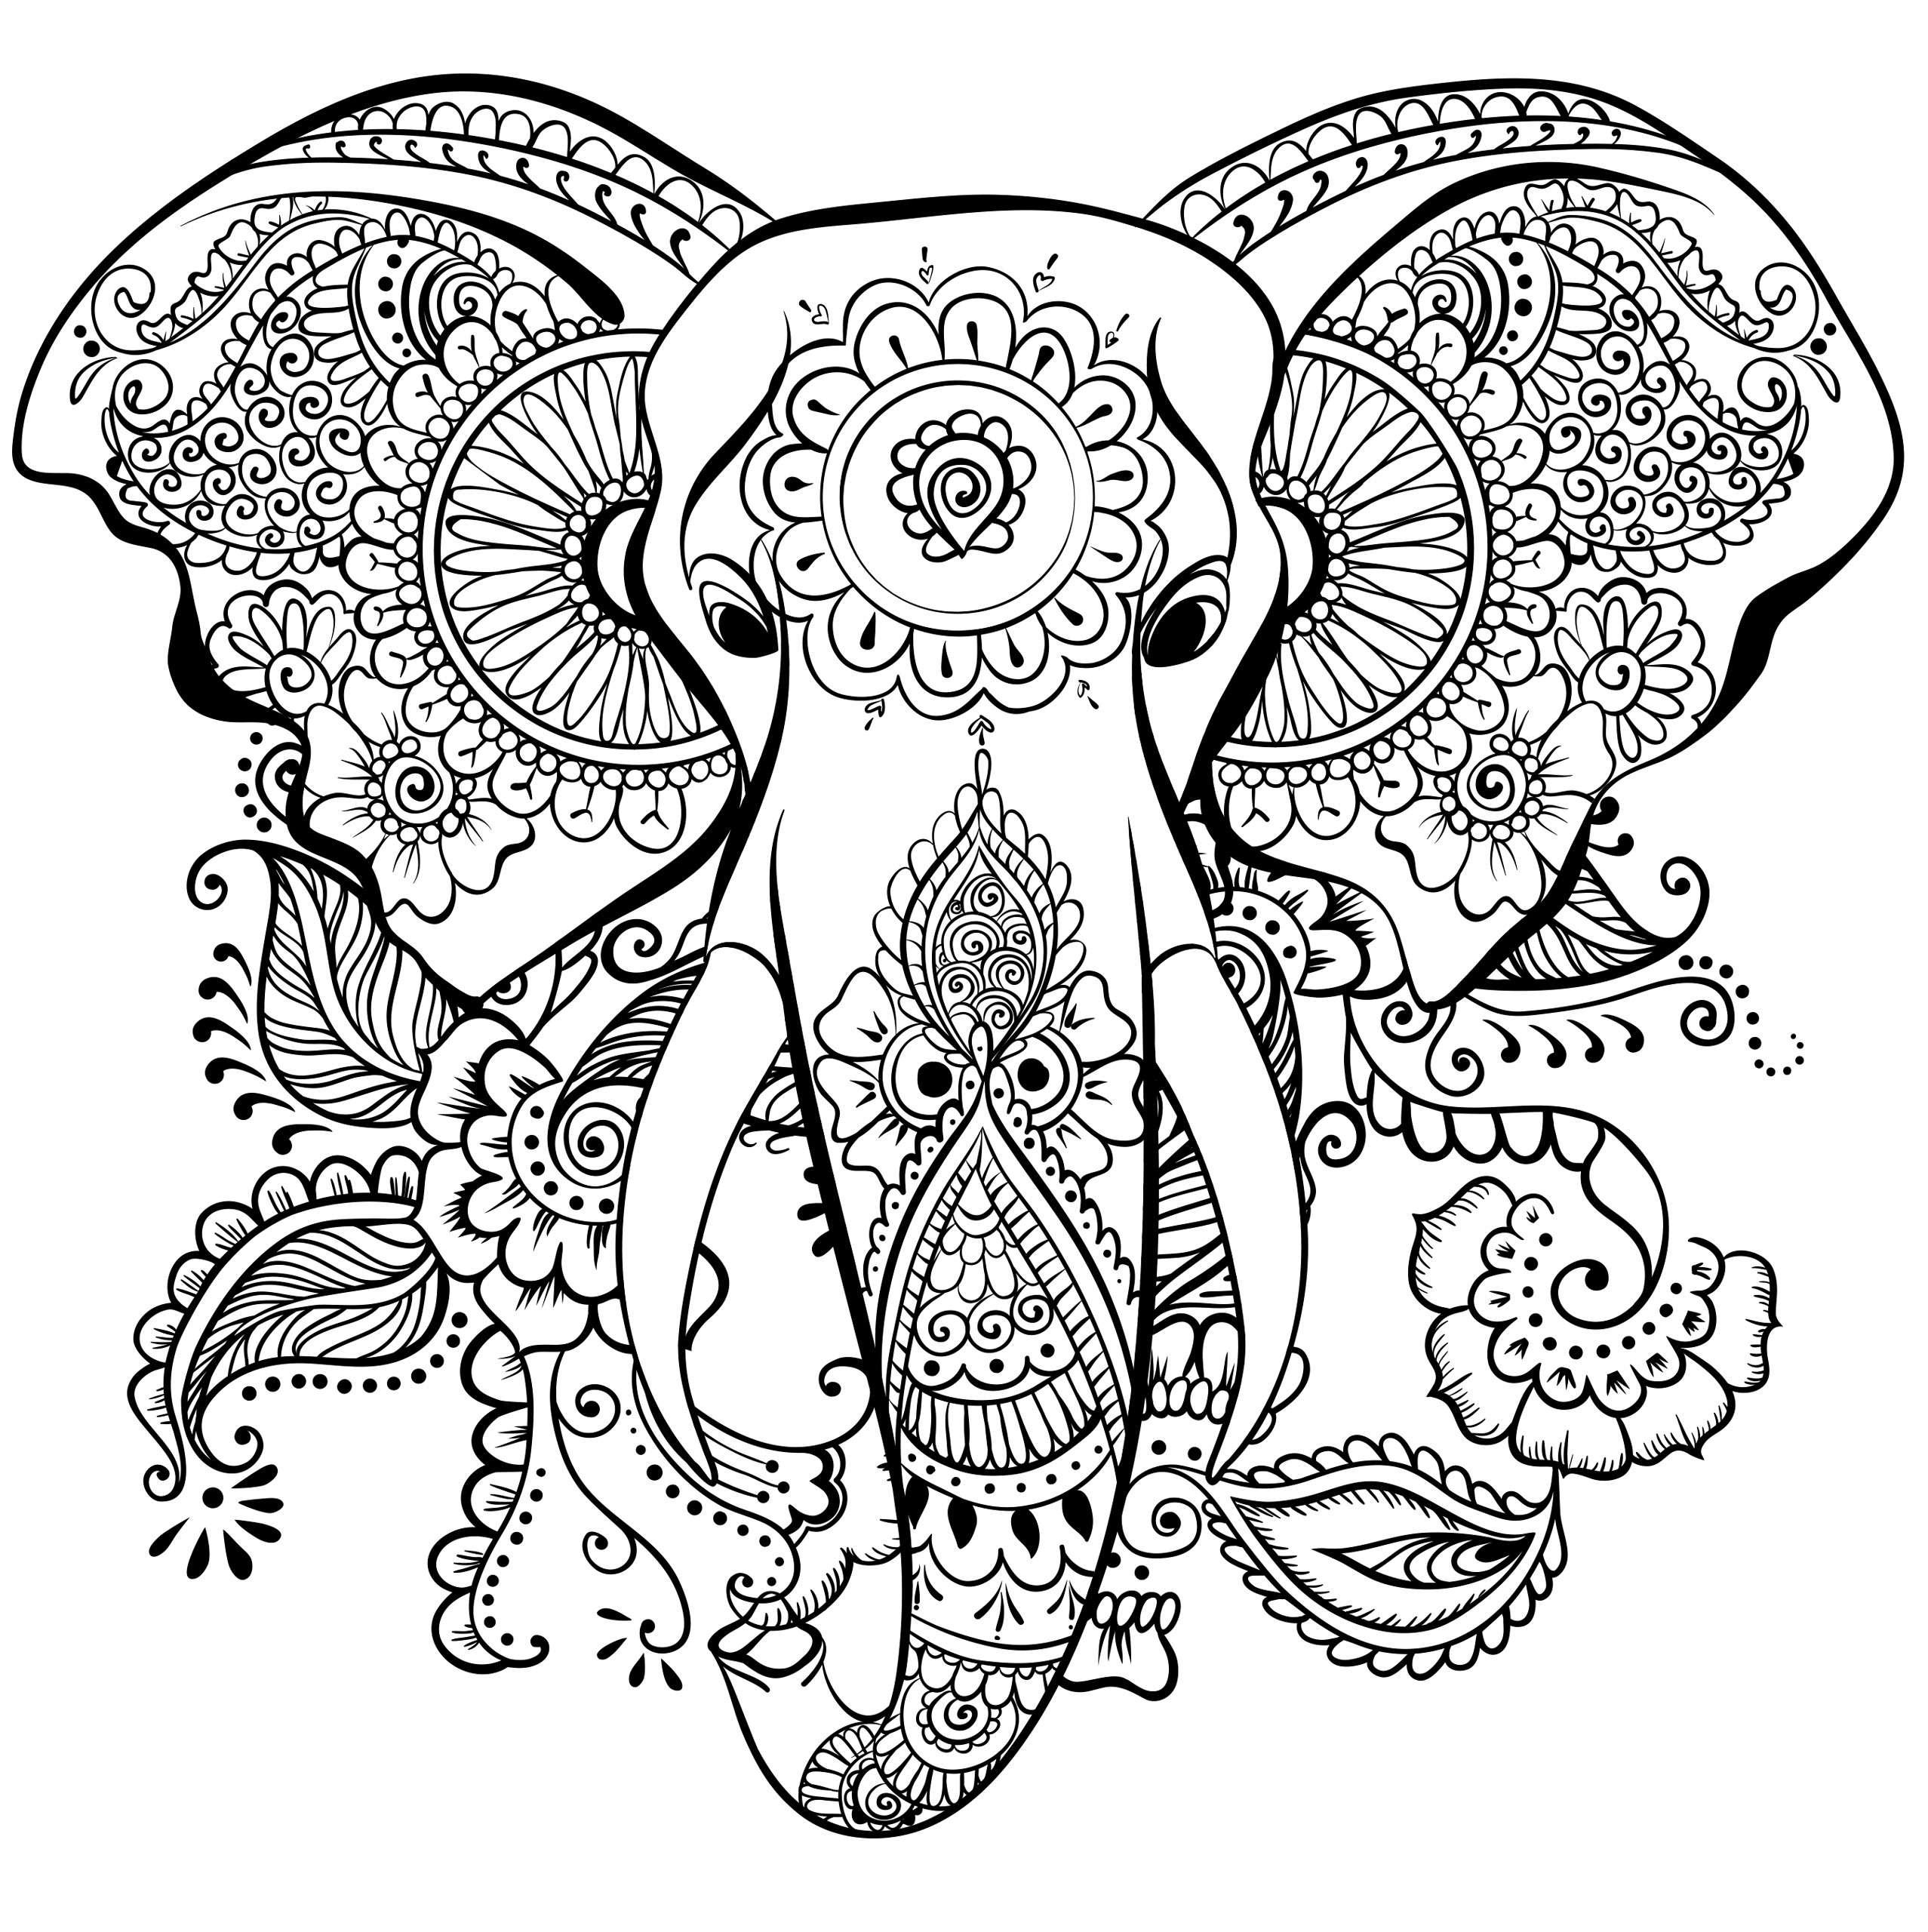 Elephant Coloring Book For Adults  63 Adult Coloring Pages To Nourish Your Mental Visual